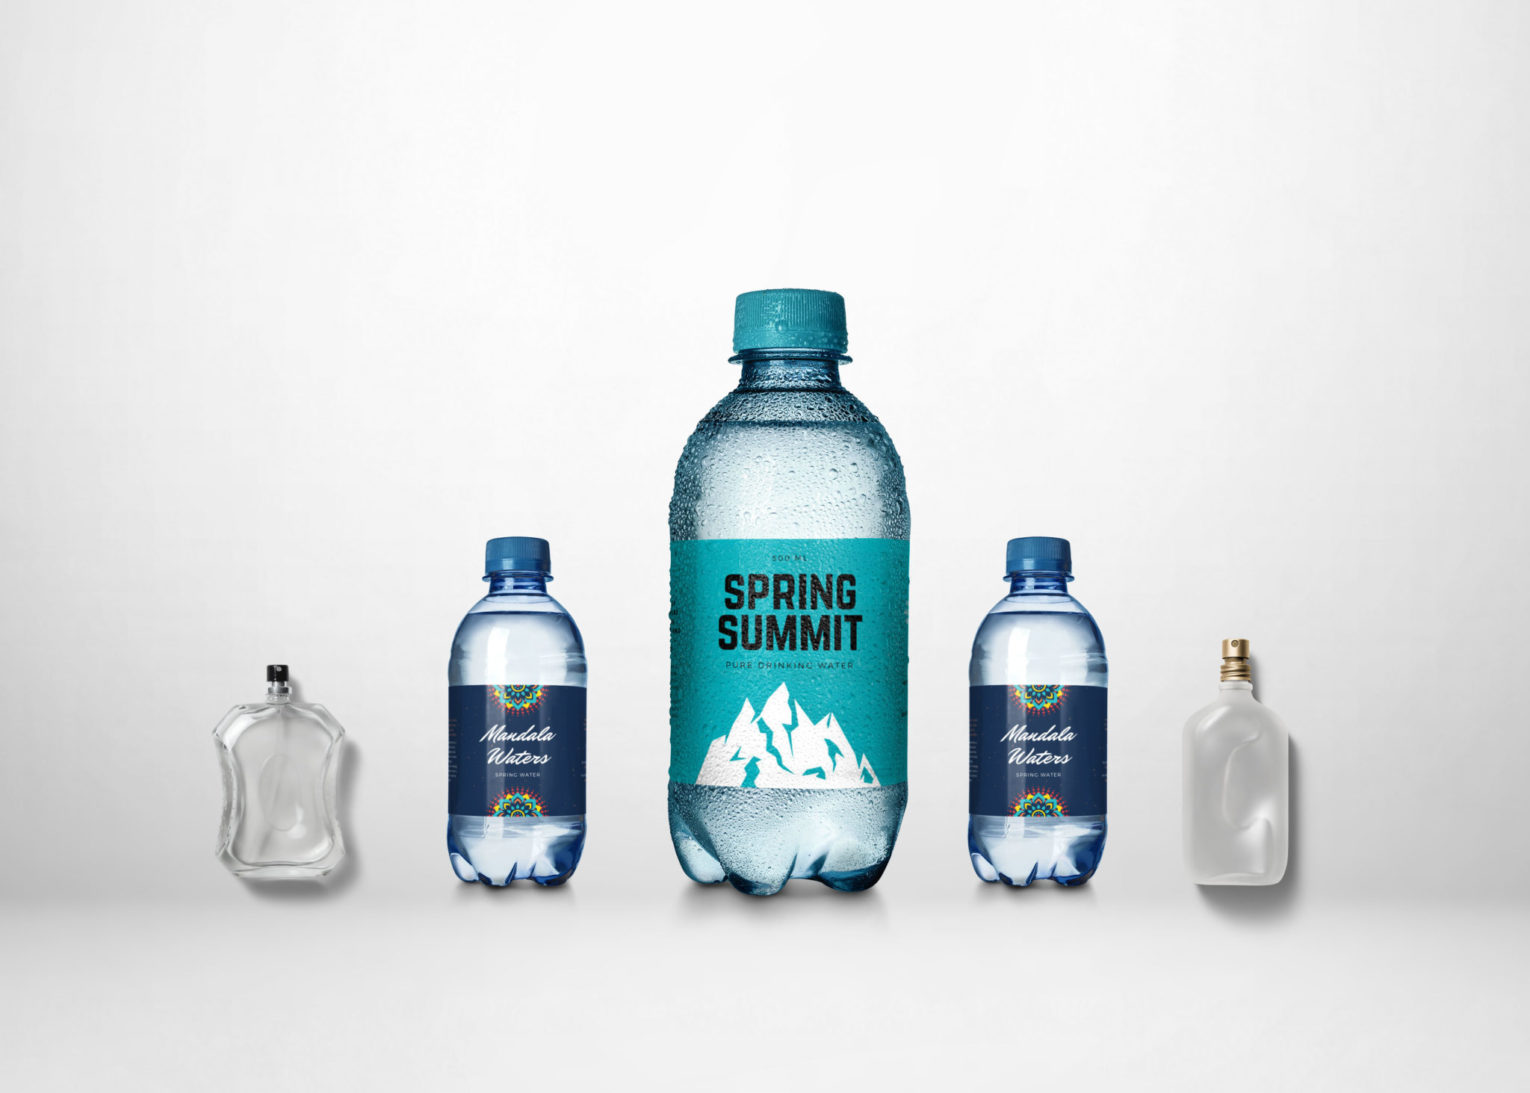 Clear Spring Summit Drining Water Bottle Mockup